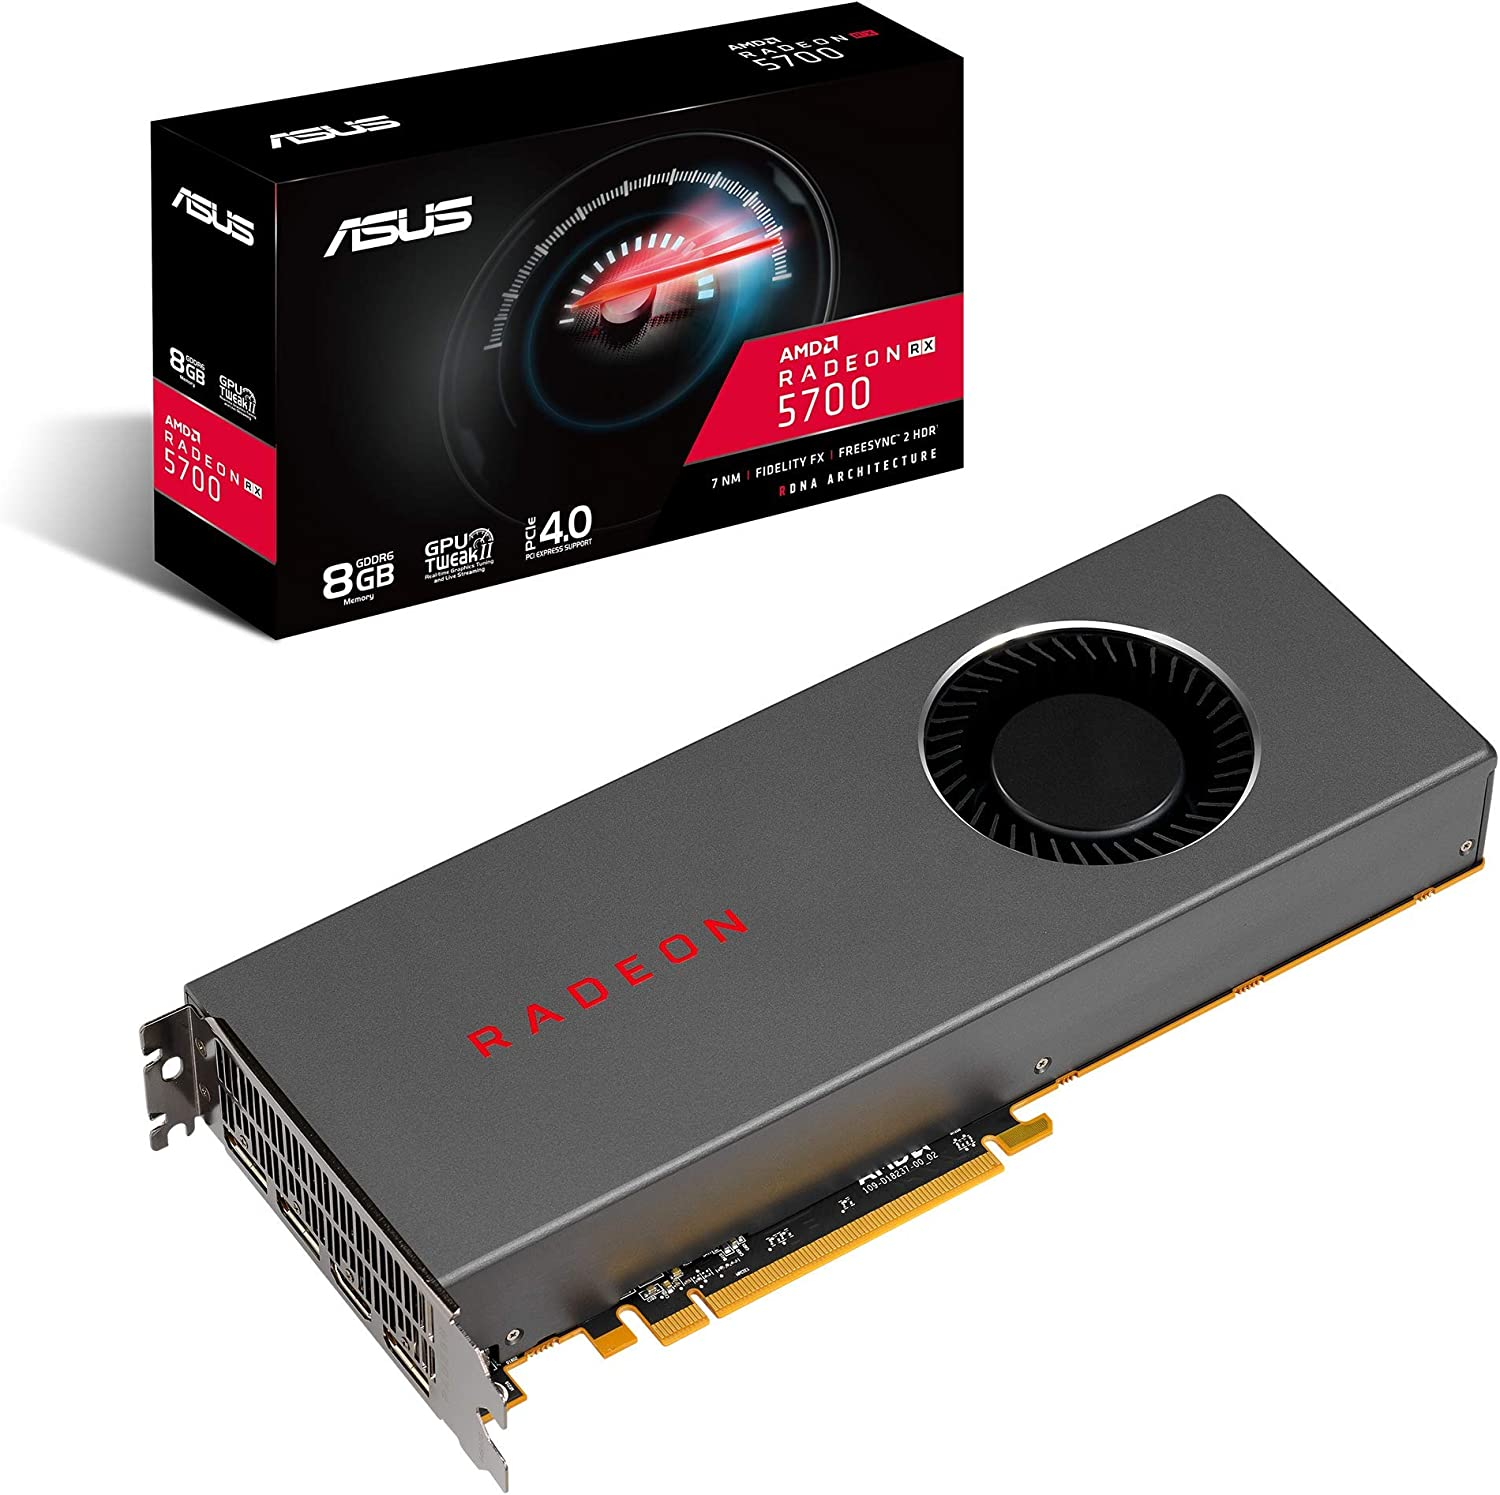 Amazon.com: Asus AMD Radeon Rx 5700 PCIe 4.0 VR Ready ...